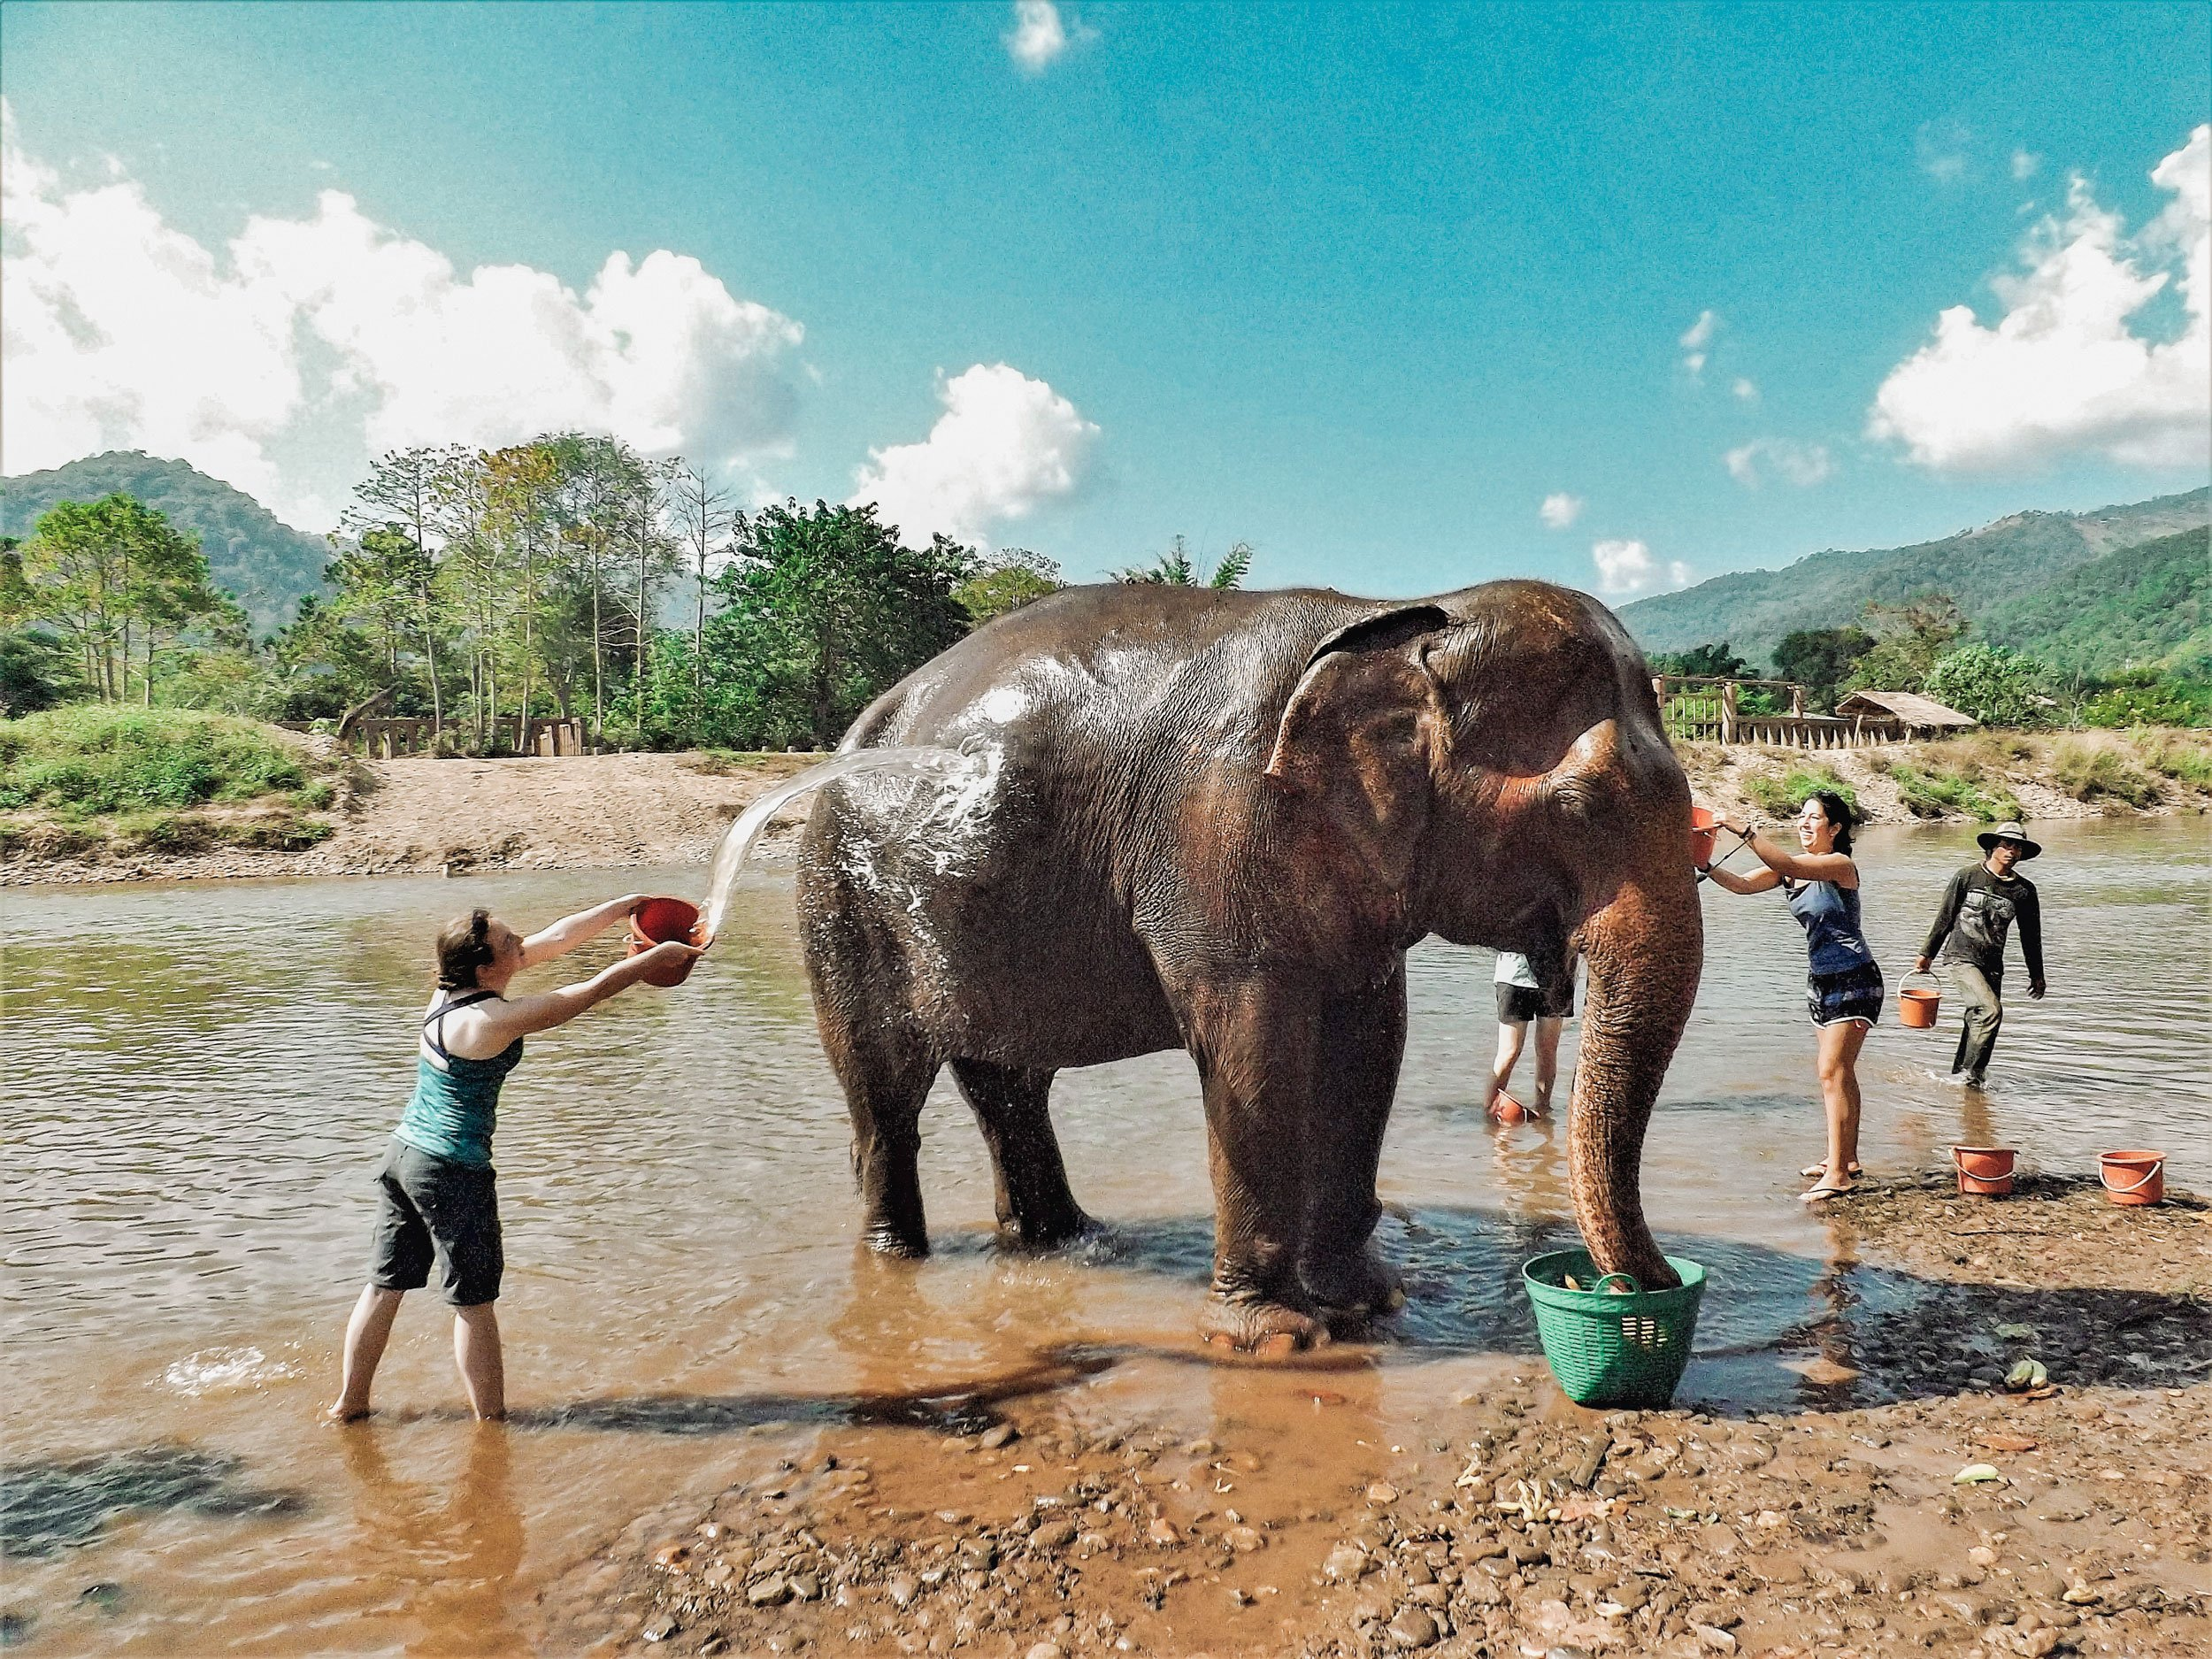 Bathing an elephant in Thailand is the sort of once-in-a-lifetime experience you might include on a RTW trip | What is a RTW Trip?